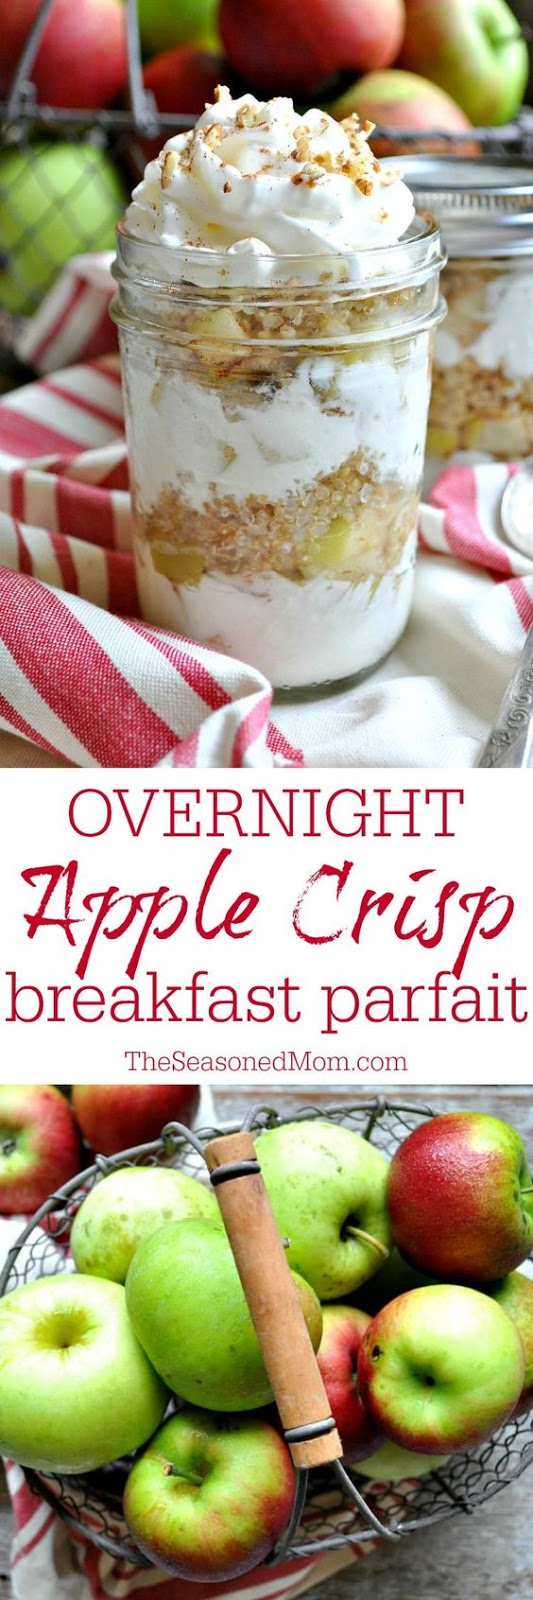 OVERNIGHT APPLE CRISP BREAKFAST PARFAIT